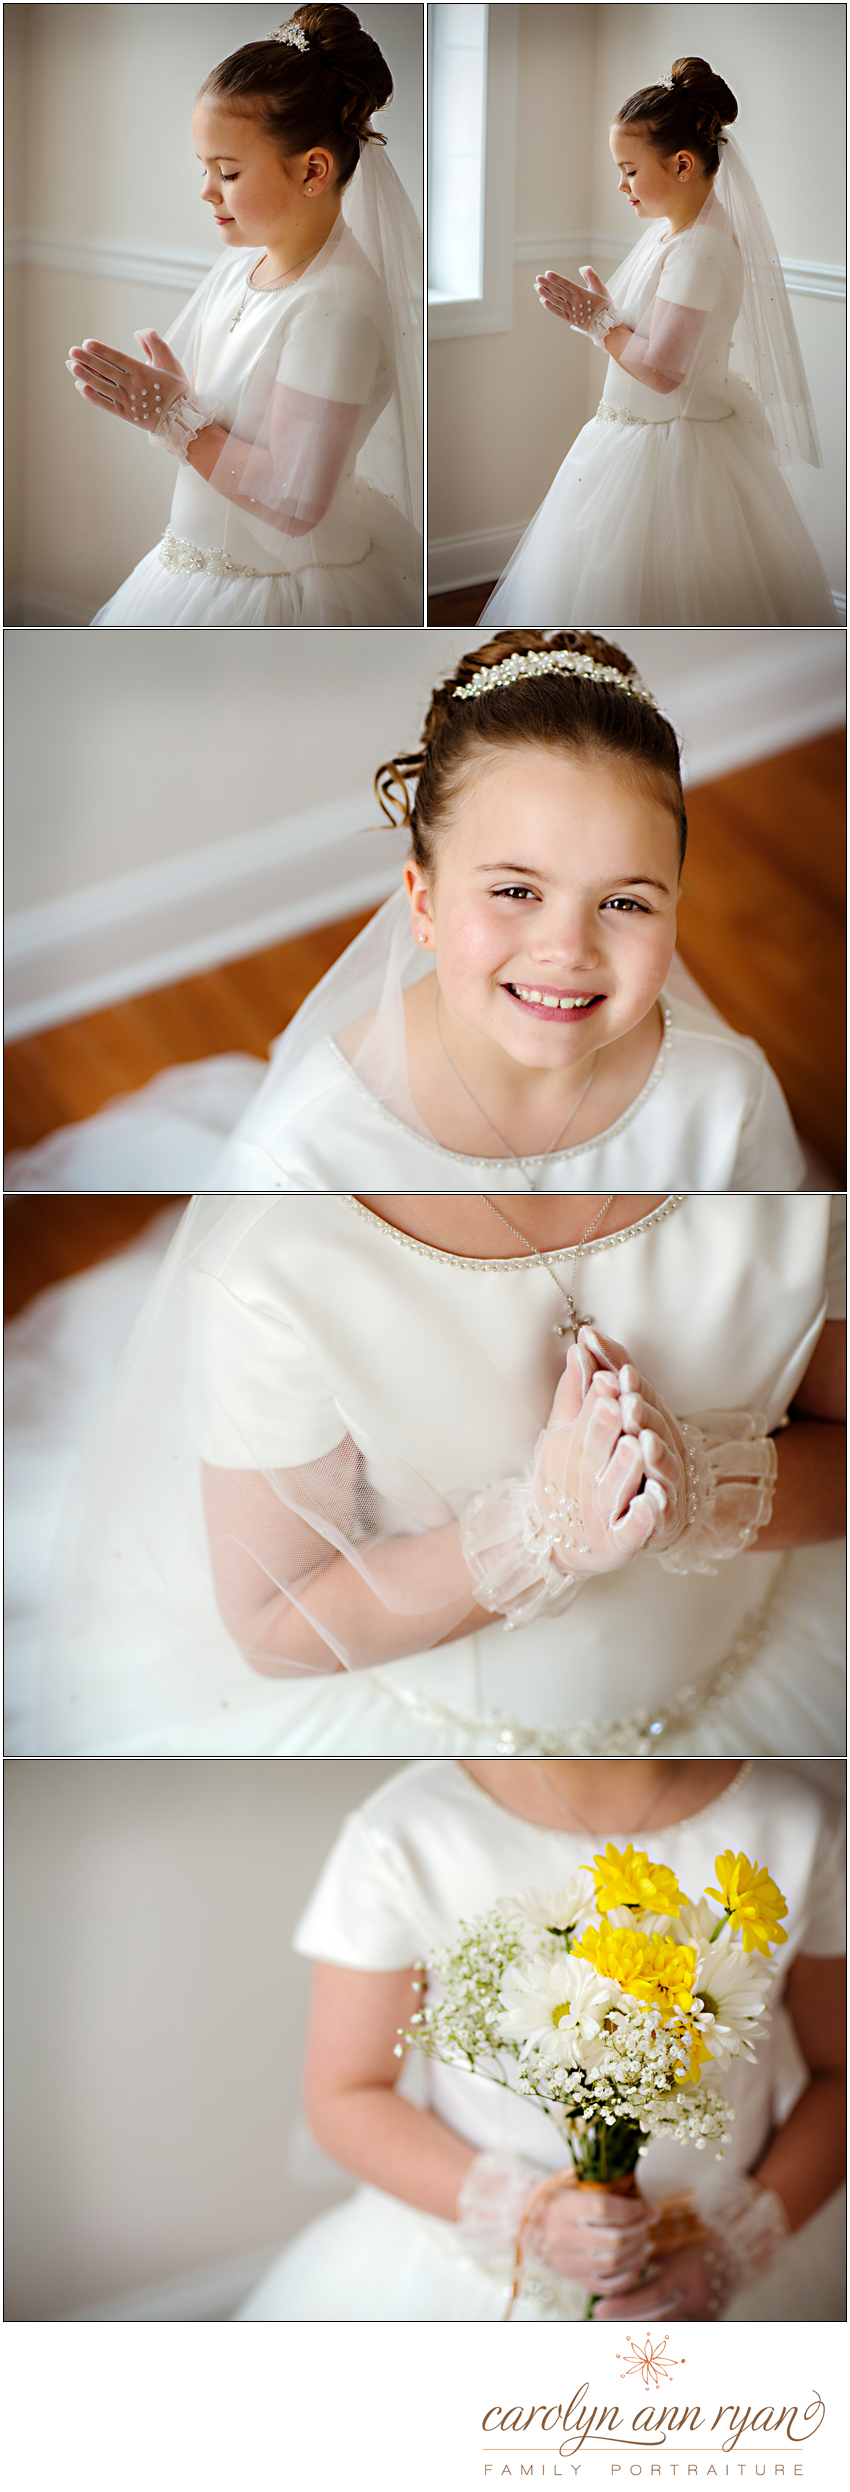 Communion Photographs captured by Carolyn Ann Ryan Photography